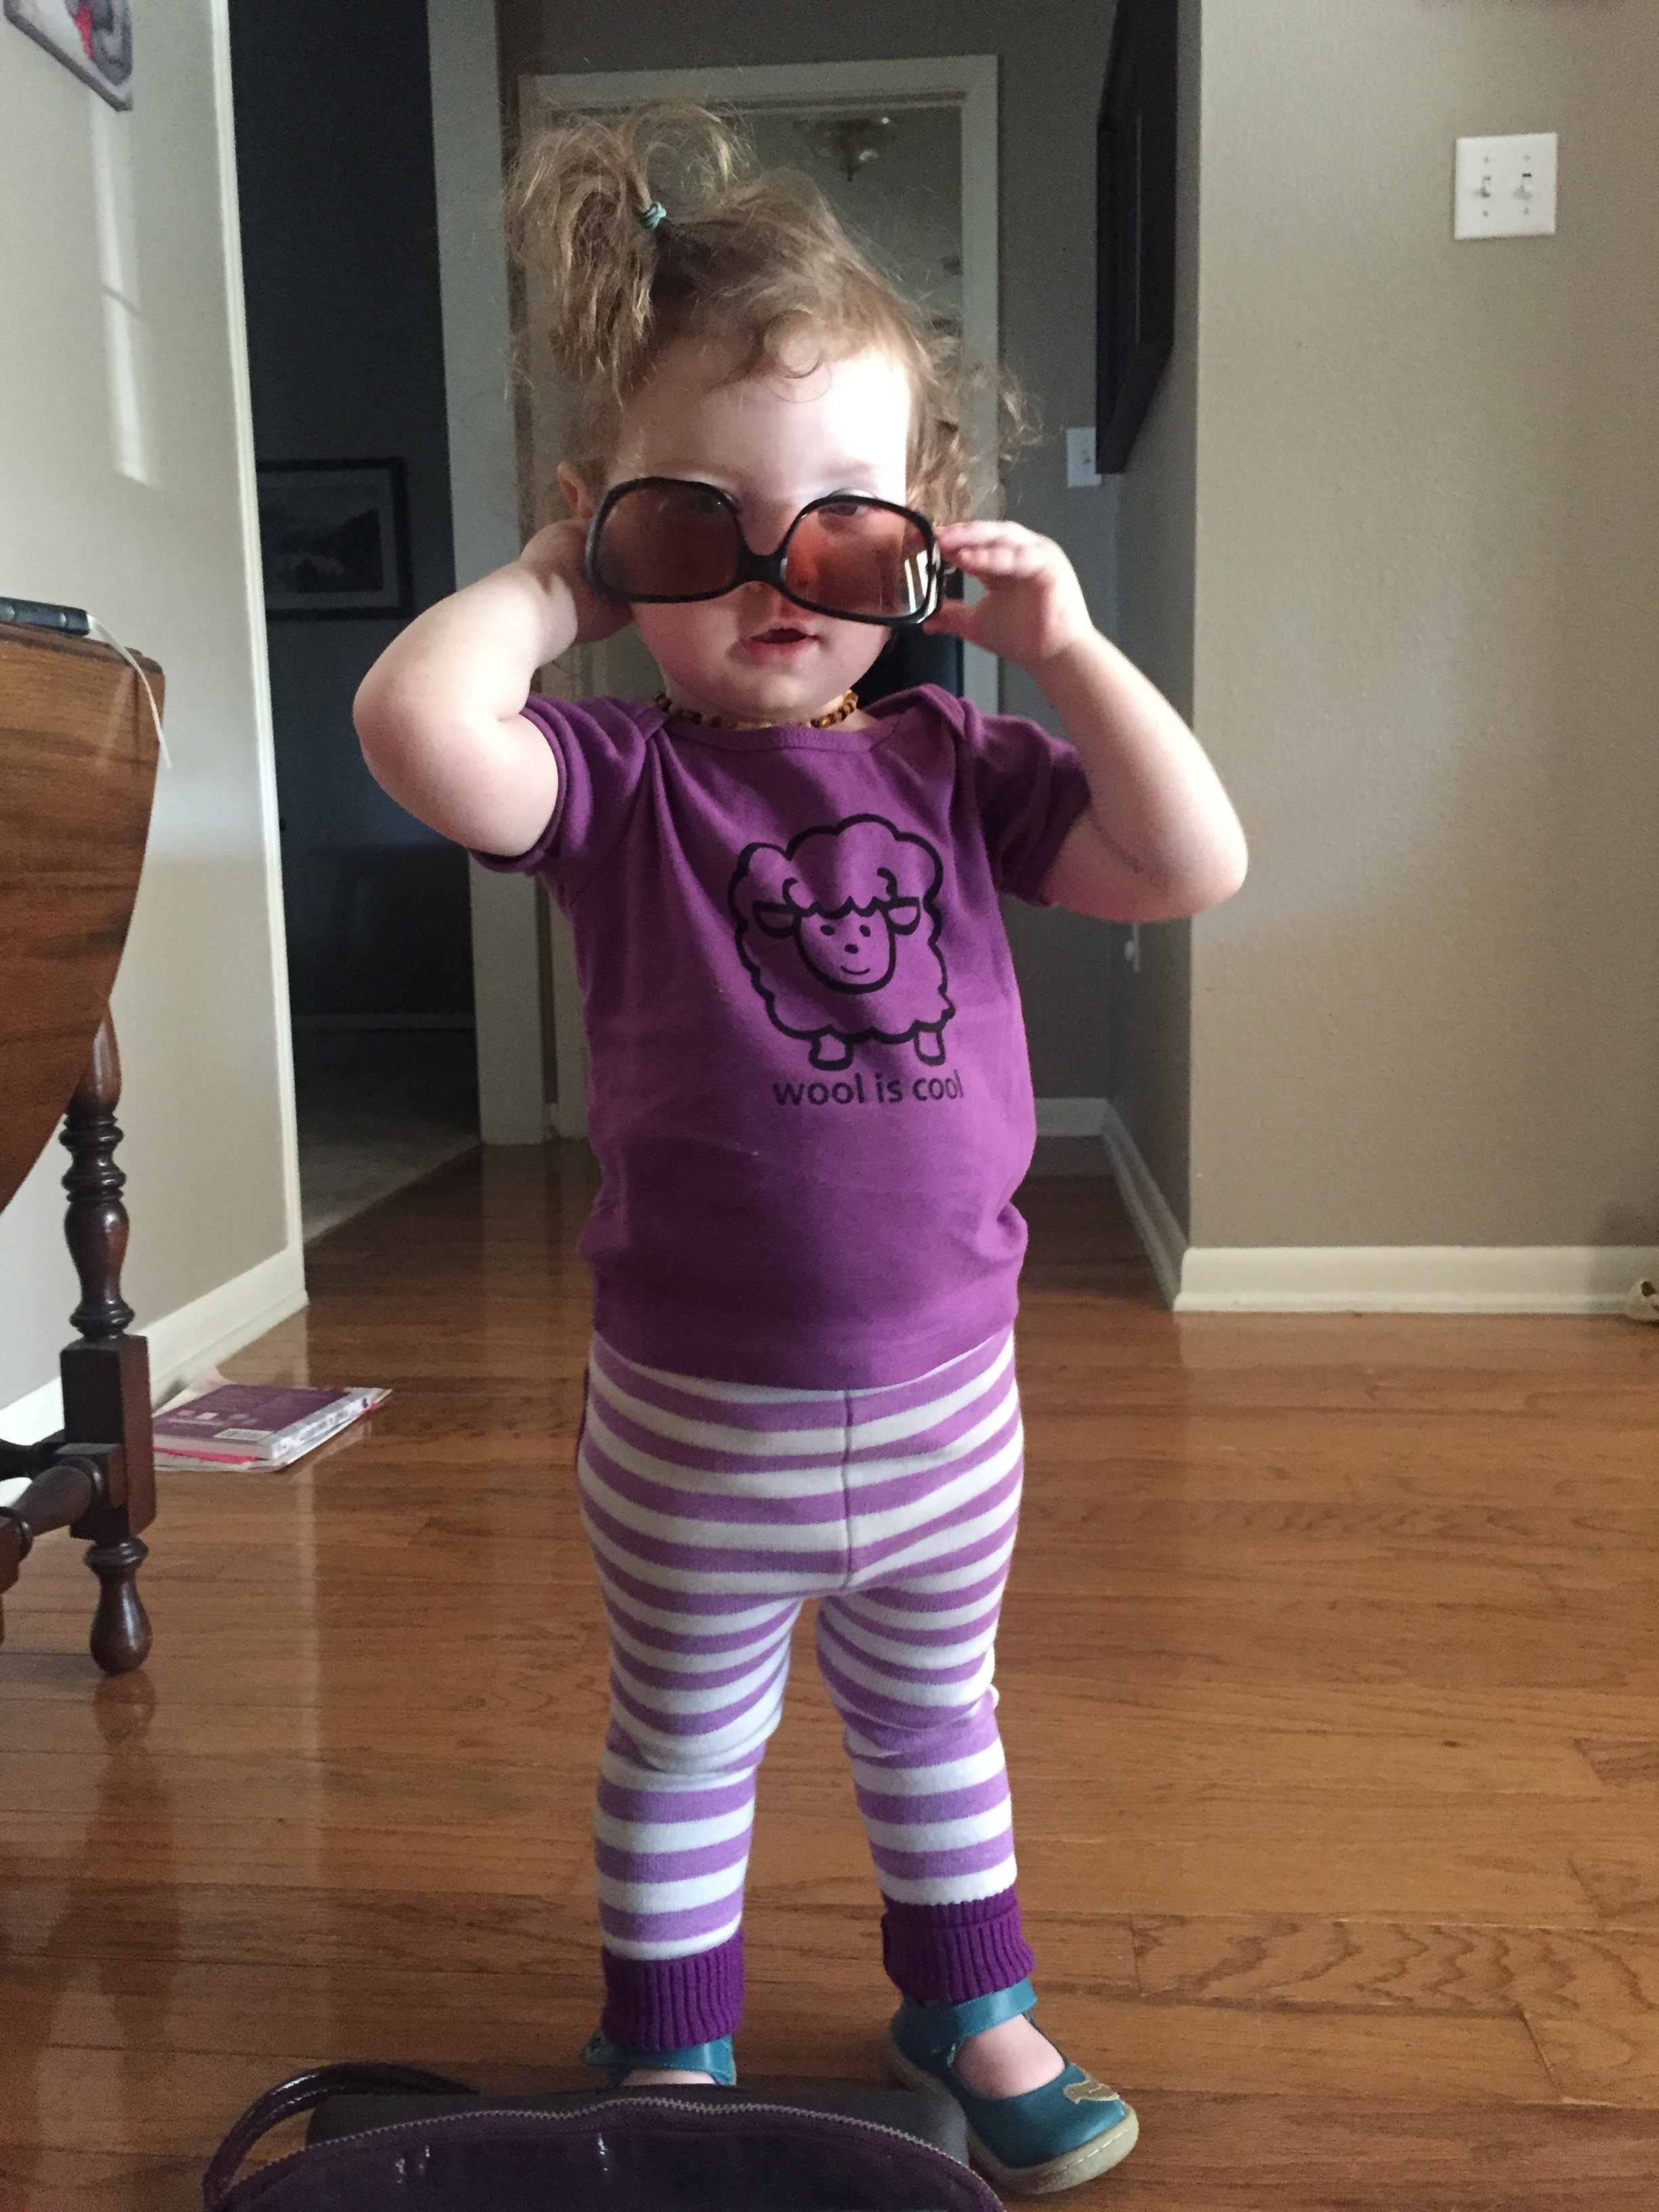 - And since I know most of you are here to see Cora, here she is again channeling Elton John in her awesome new Sloomb Gold woolies!